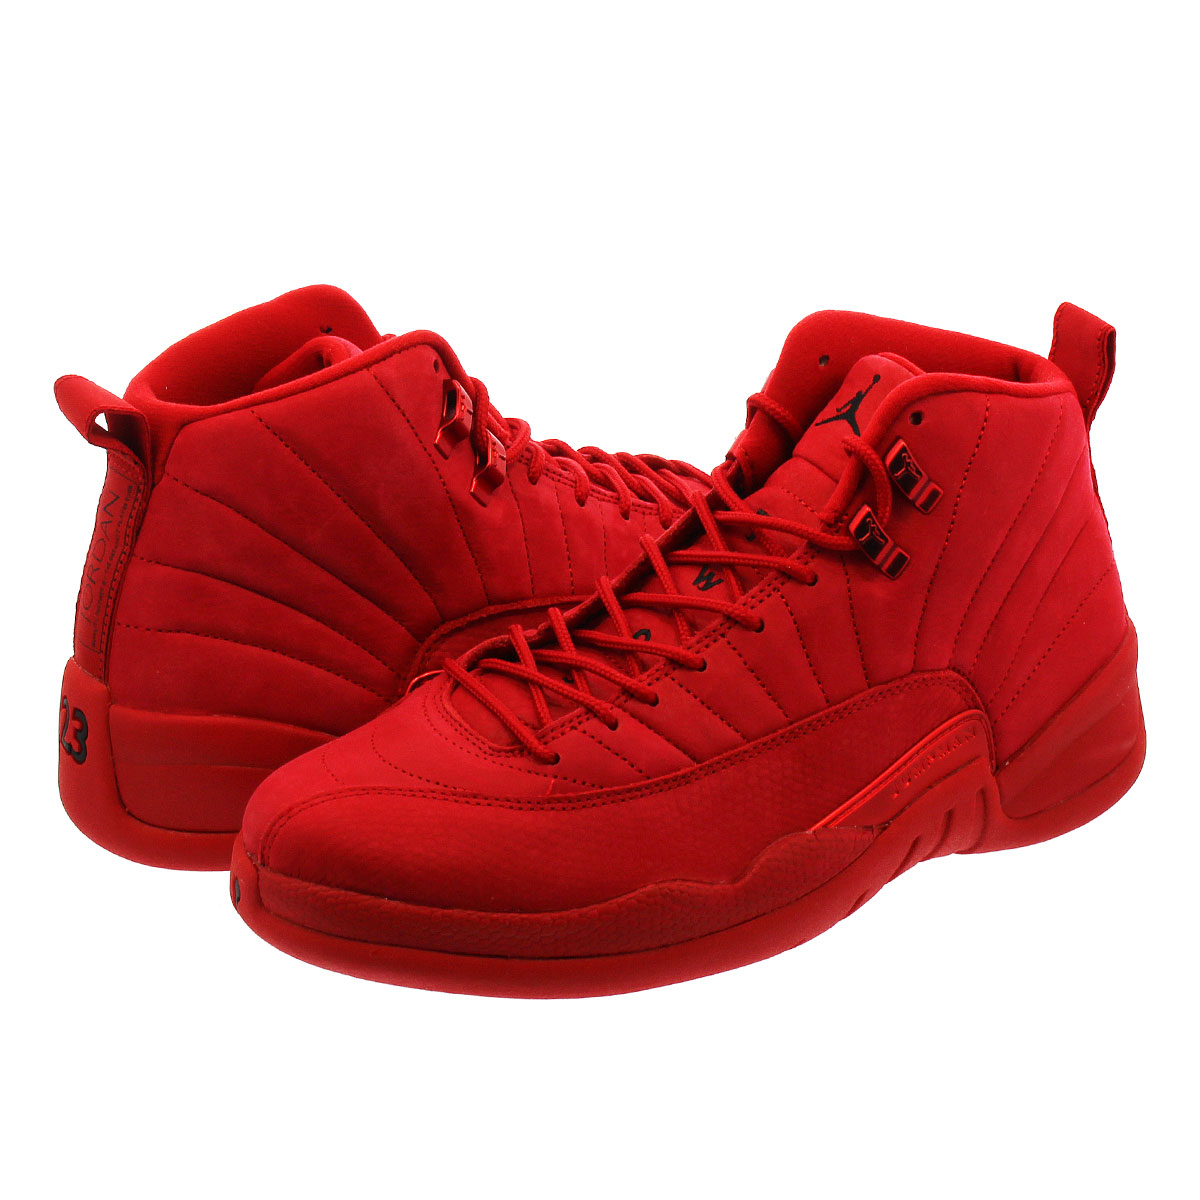 d2a564412972 NIKE AIR JORDAN 12 RETRO Nike Air Jordan 12 nostalgic GYM RED BLACK  130